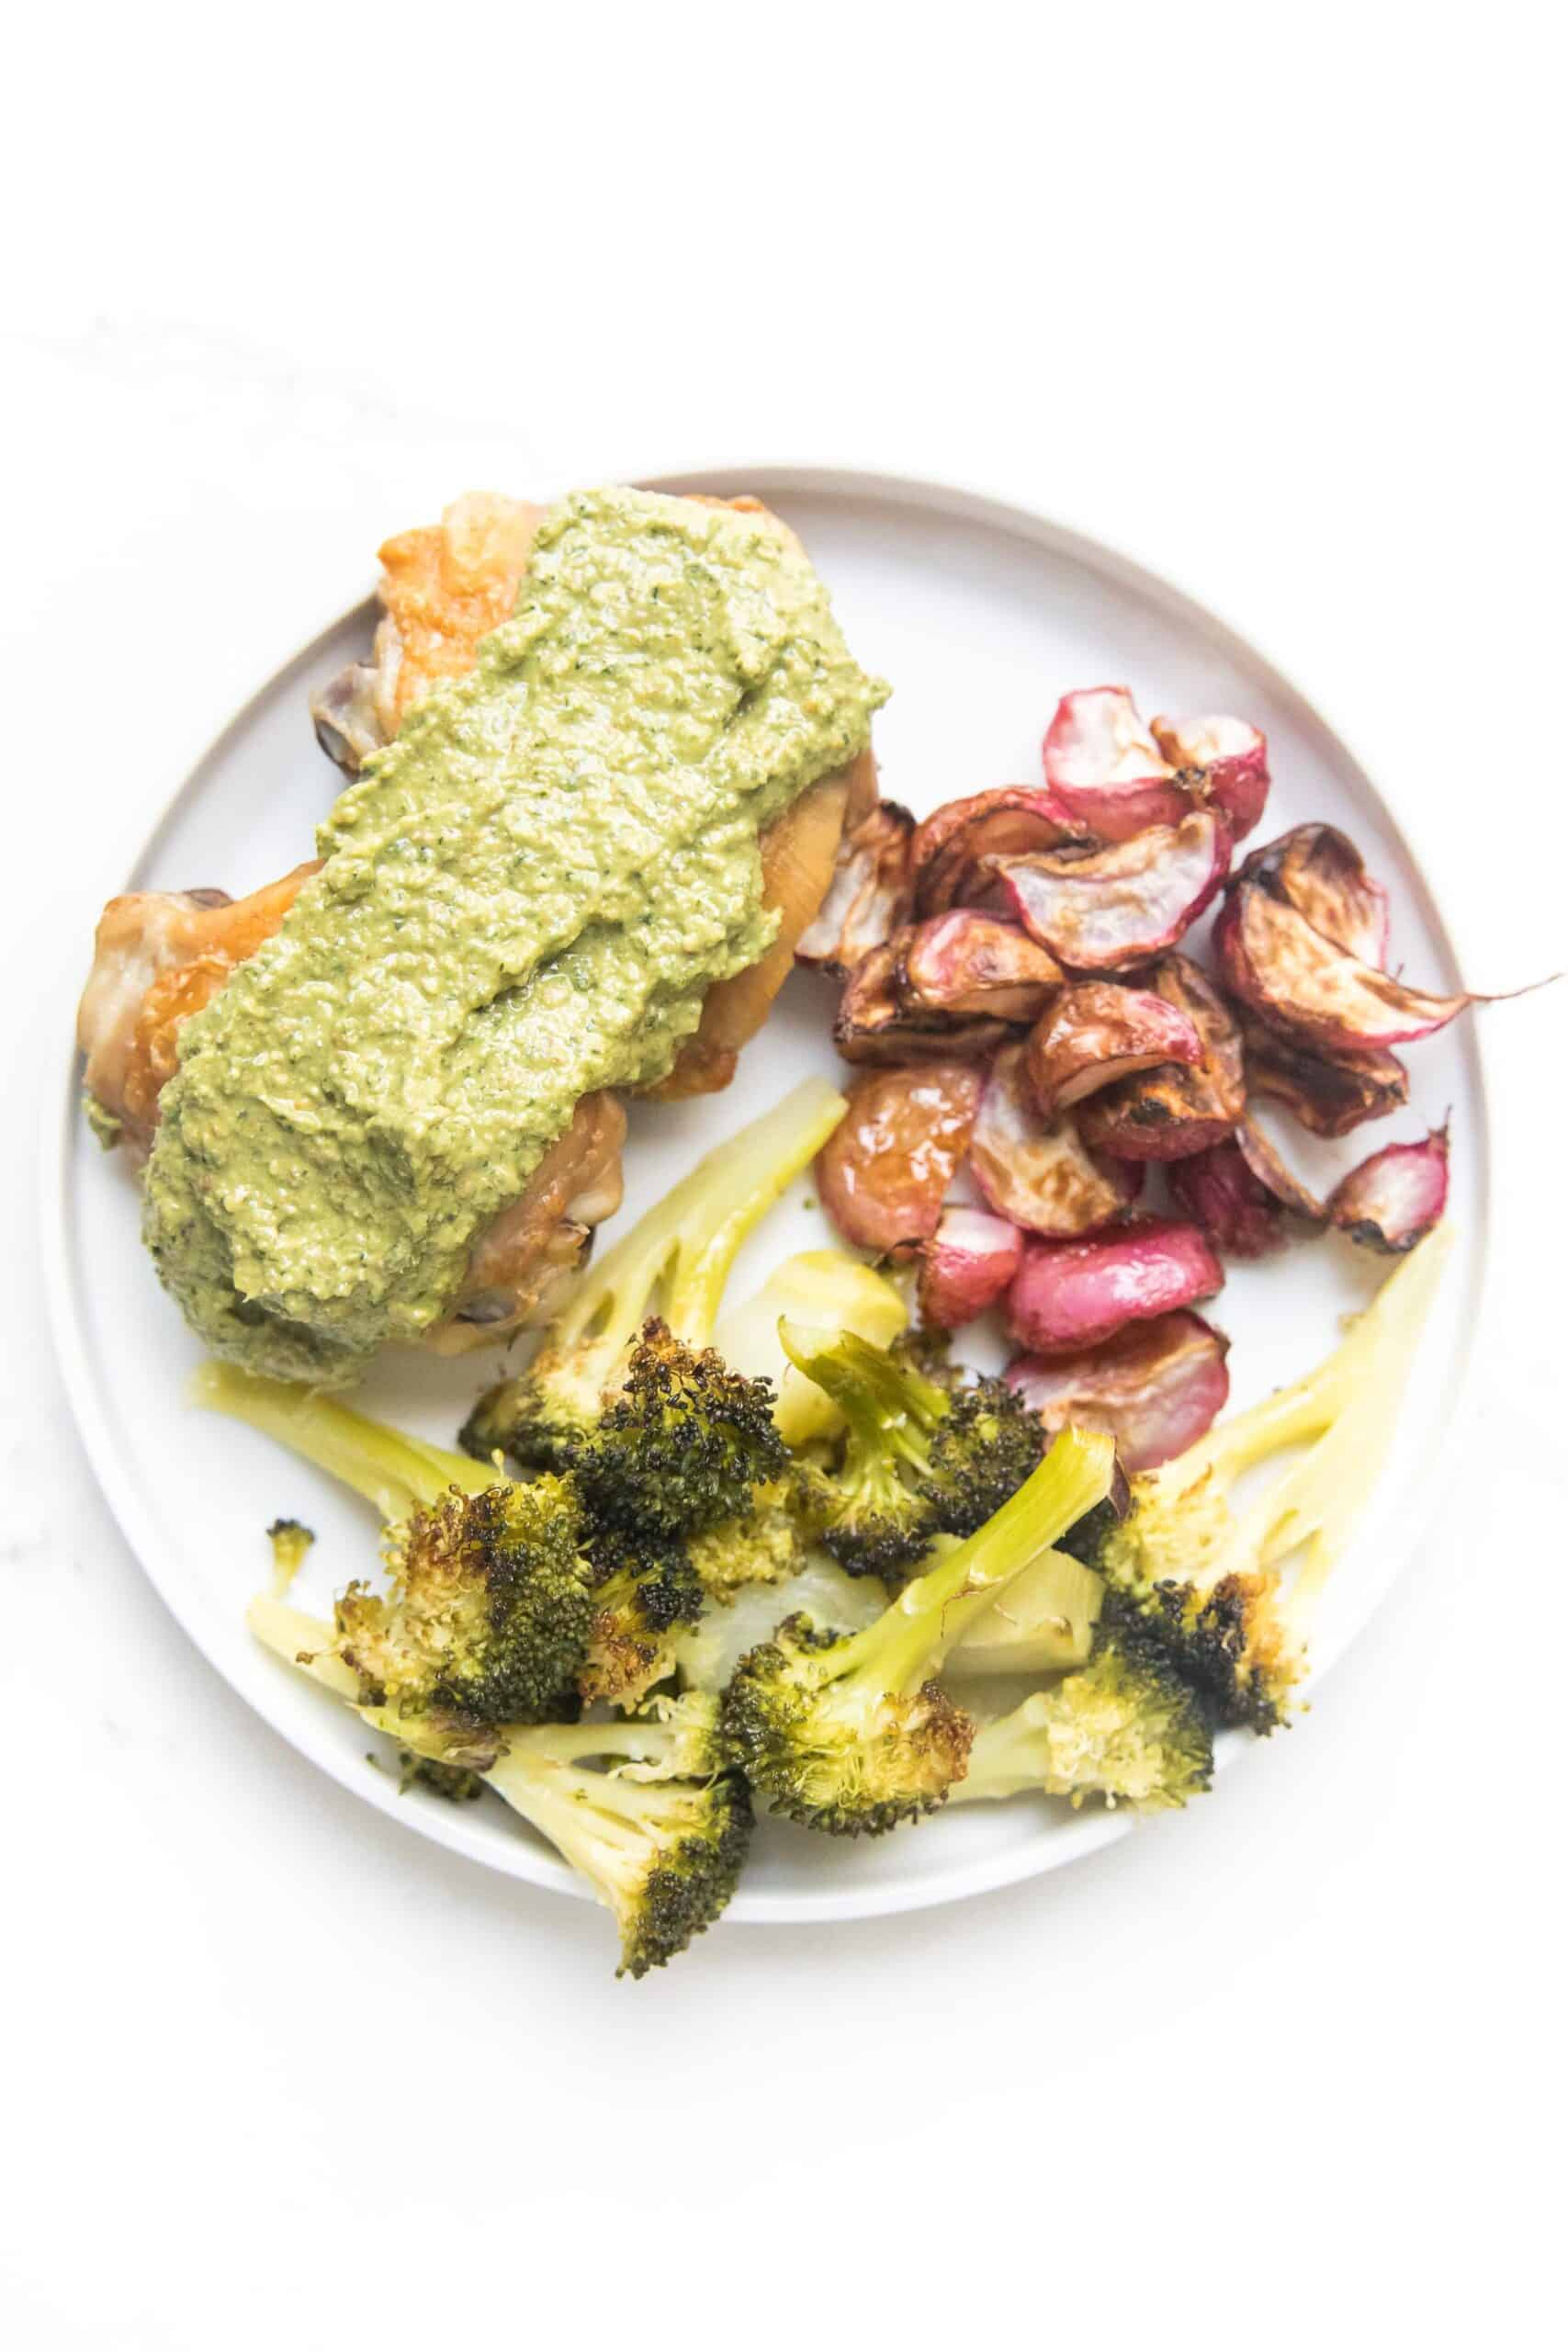 chicken thighs with a green sauce, broccoli and roasted radishes on a white plate